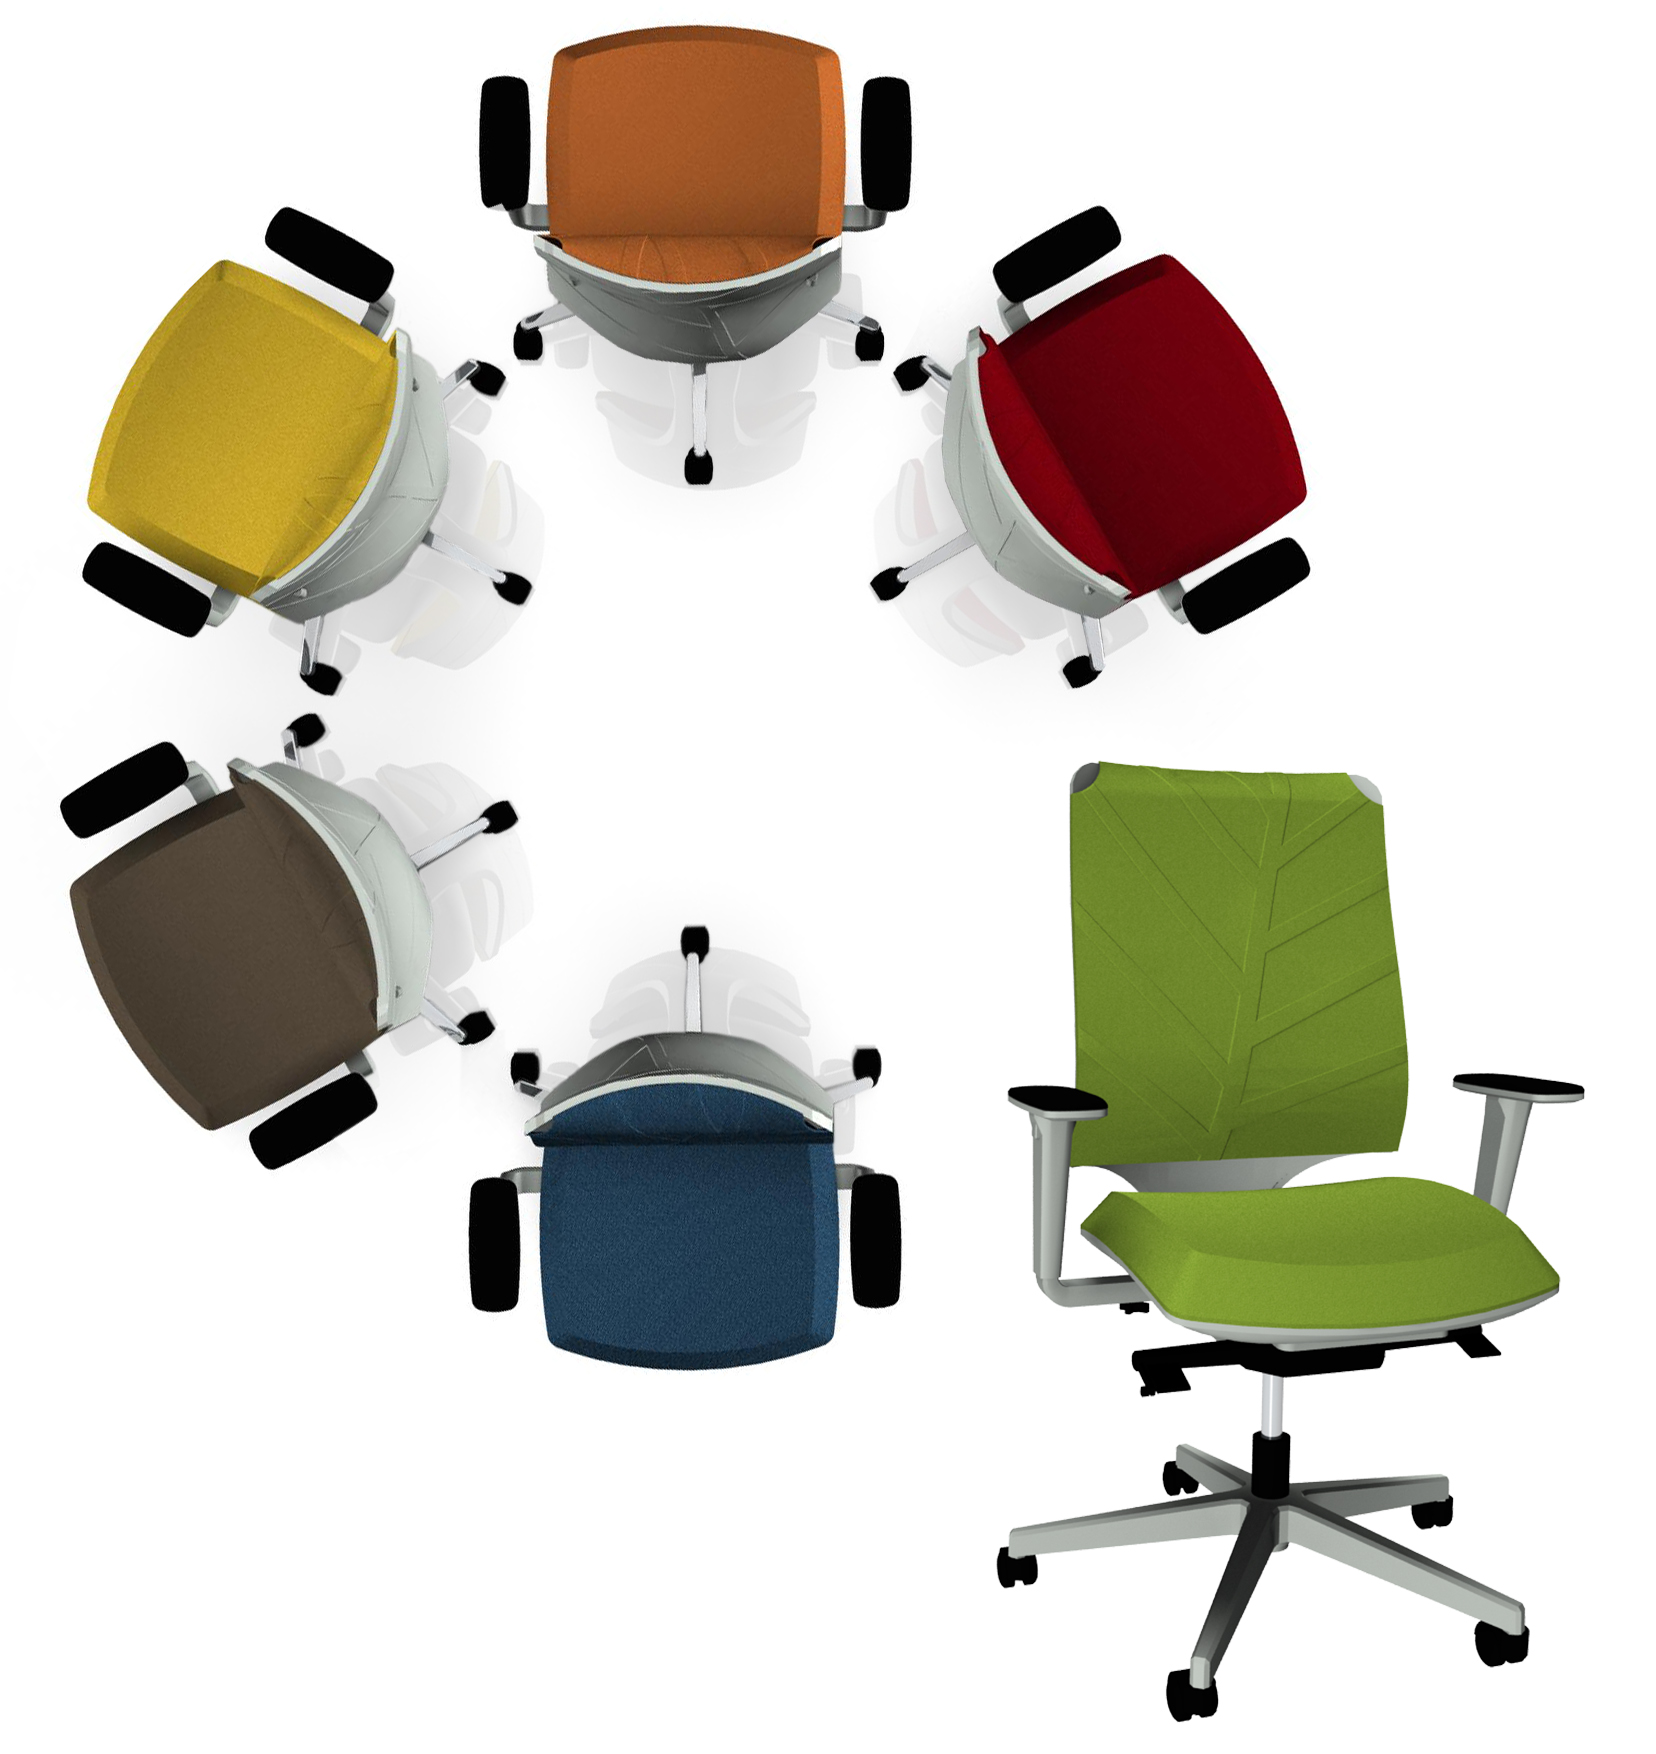 """The backrest of the swivel chair """"Leaf"""" from SitLand is inspired by leaf veins"""